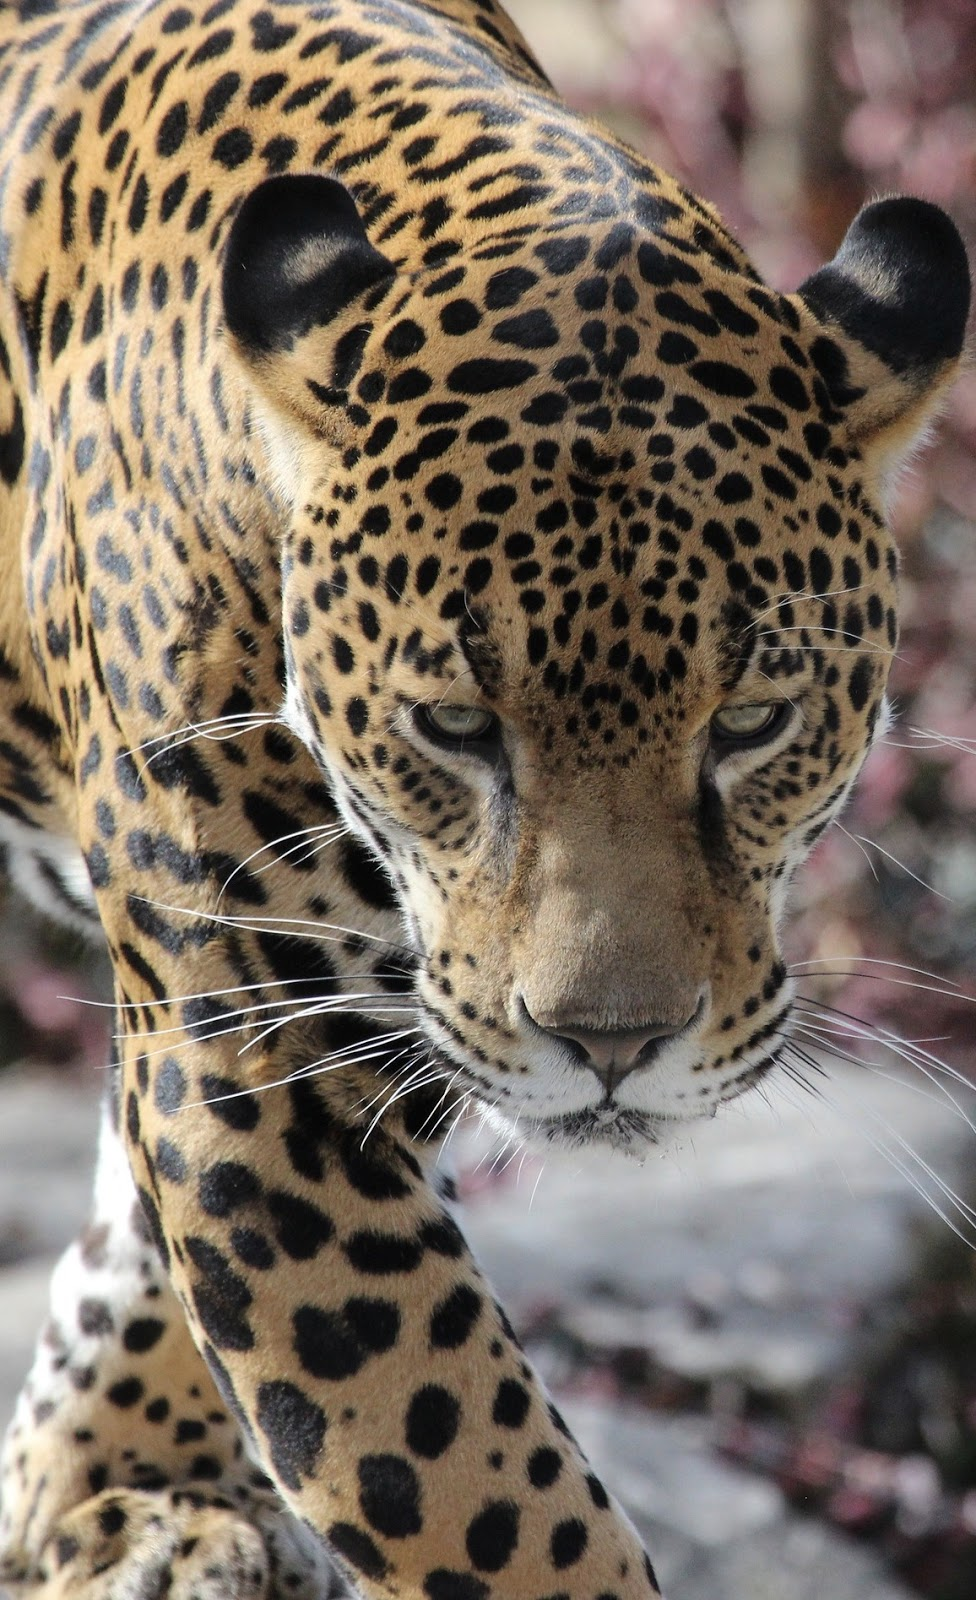 Picture of a jaguar up close.